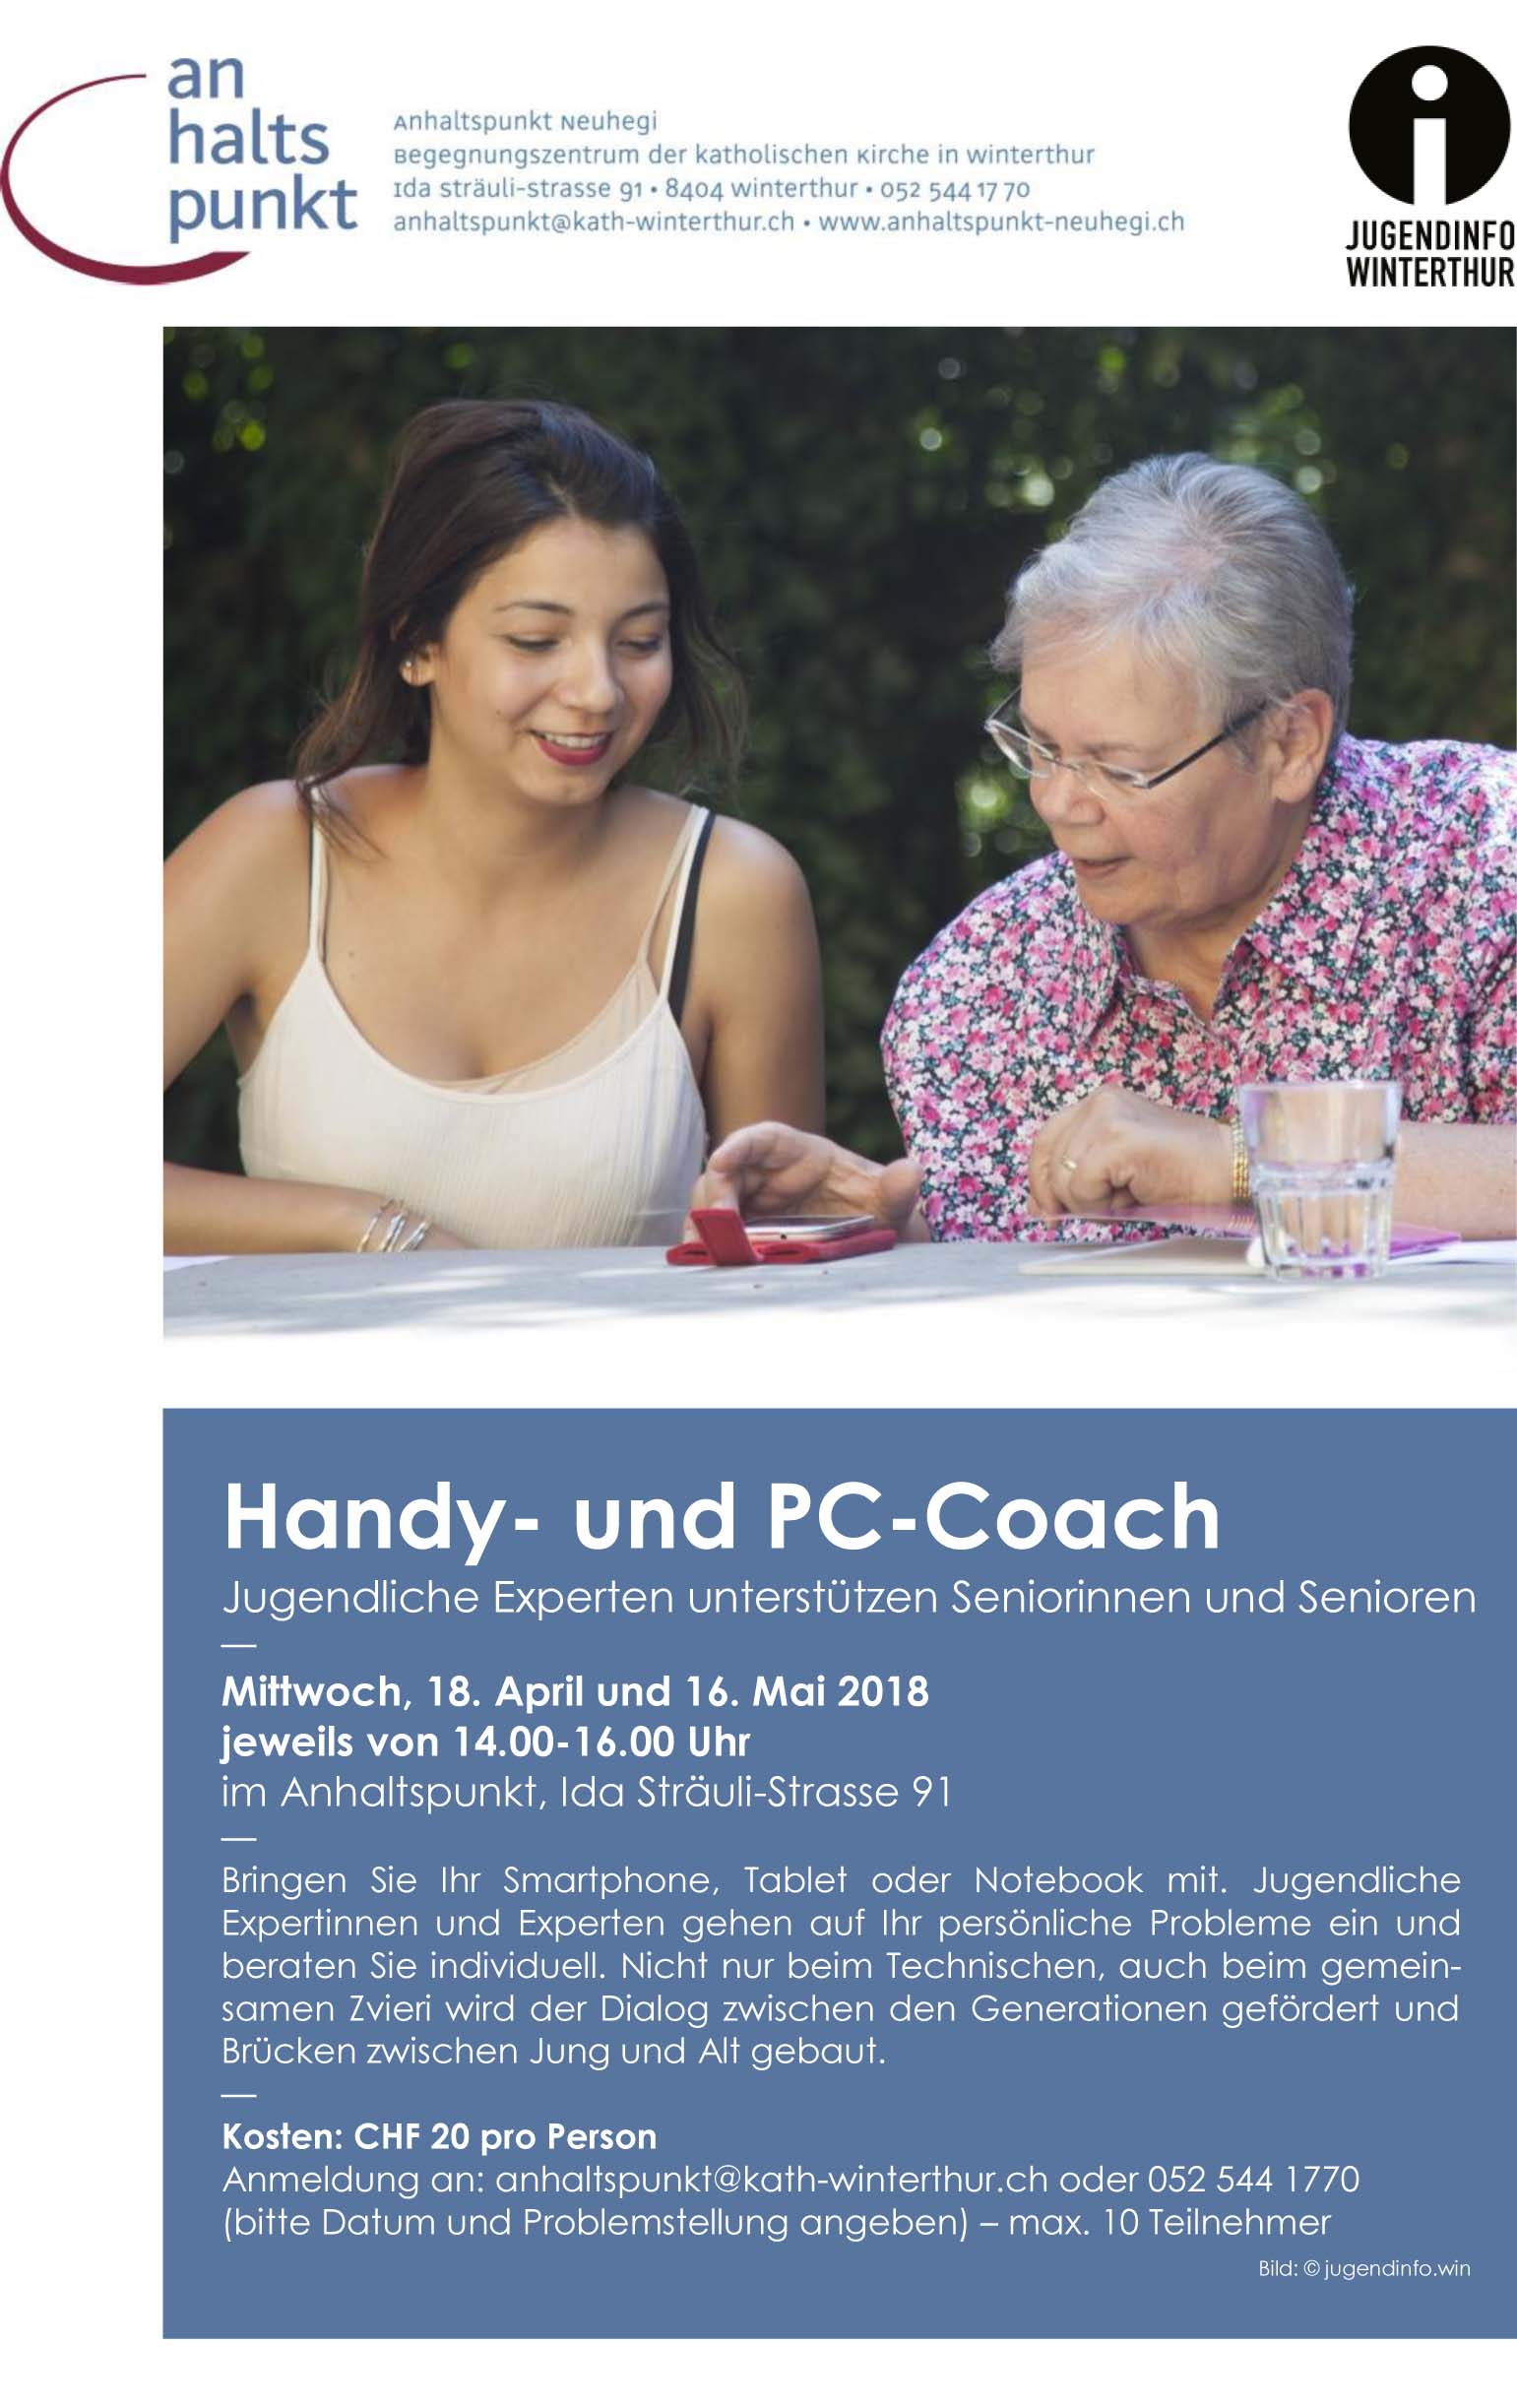 ahp Handy PC Coach 18